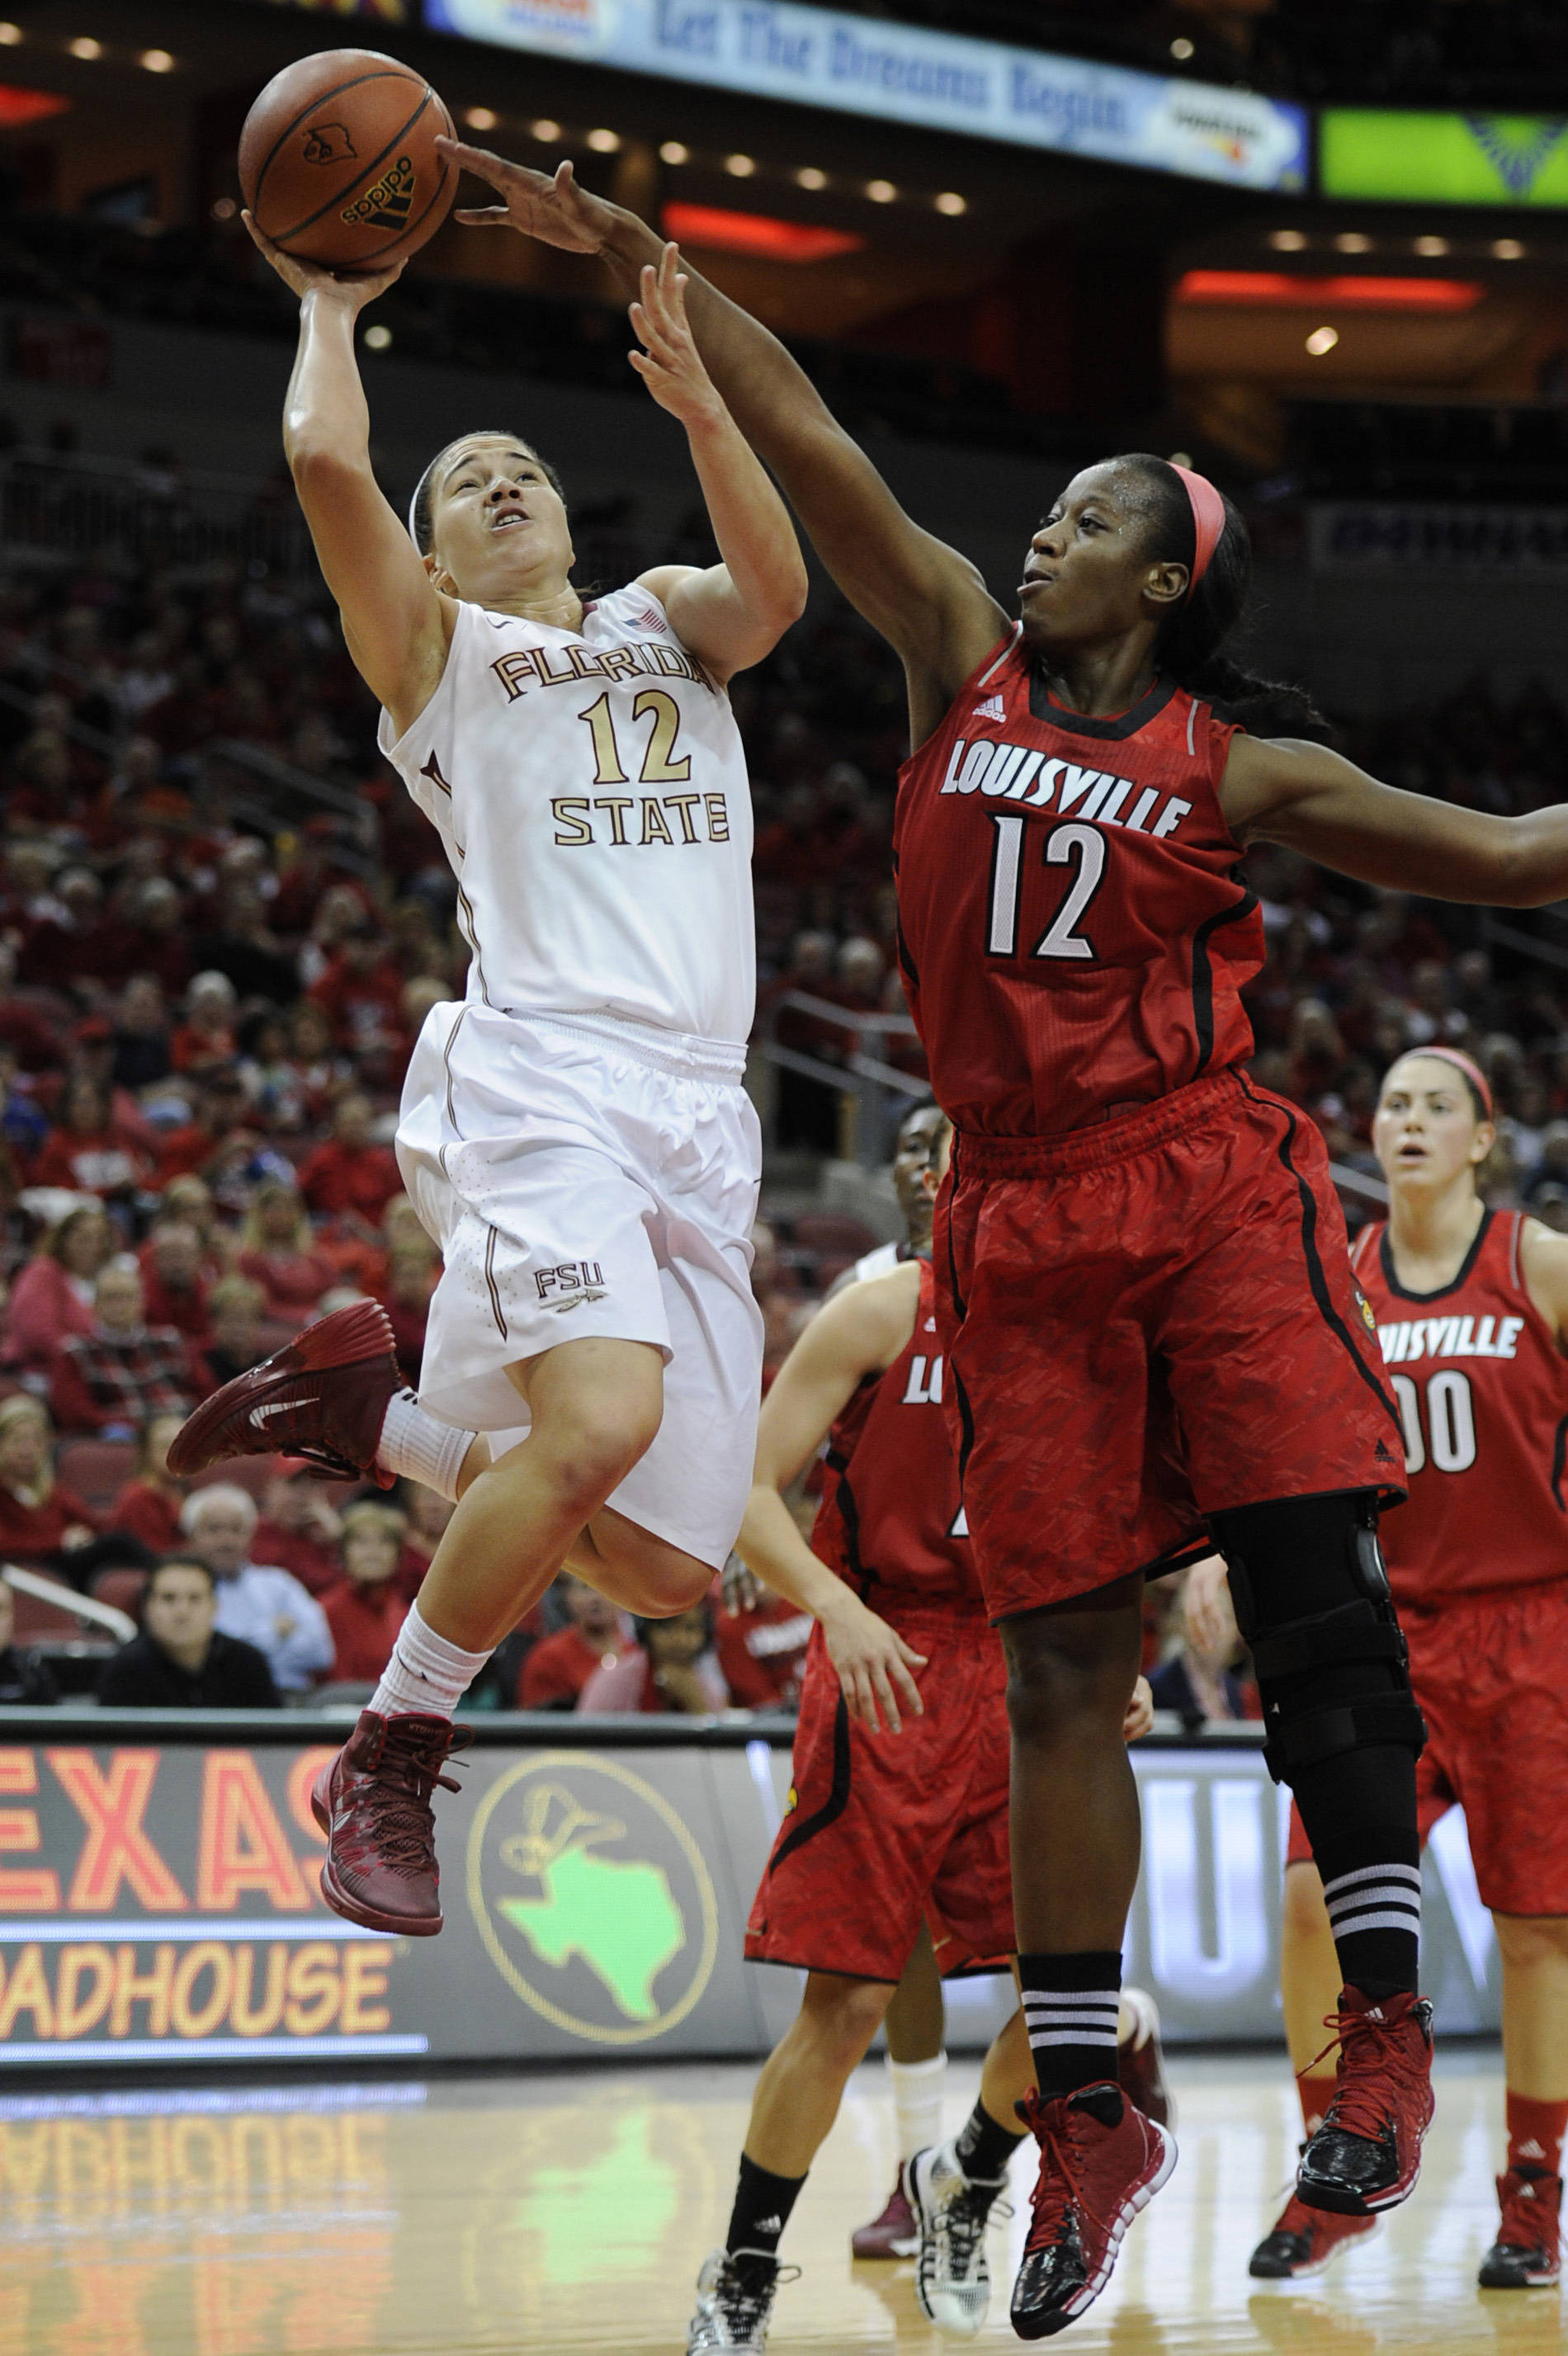 Nov 24, 2013; Louisville, KY, USA; Florida State Seminoles guard Brittany Brown (12) shoots the ball in front of Louisville Cardinals forward Shawnta' Dyer (12) during the first half at KFC YUM! Center. Mandatory Credit: Jamie Rhodes-USA TODAY Sports